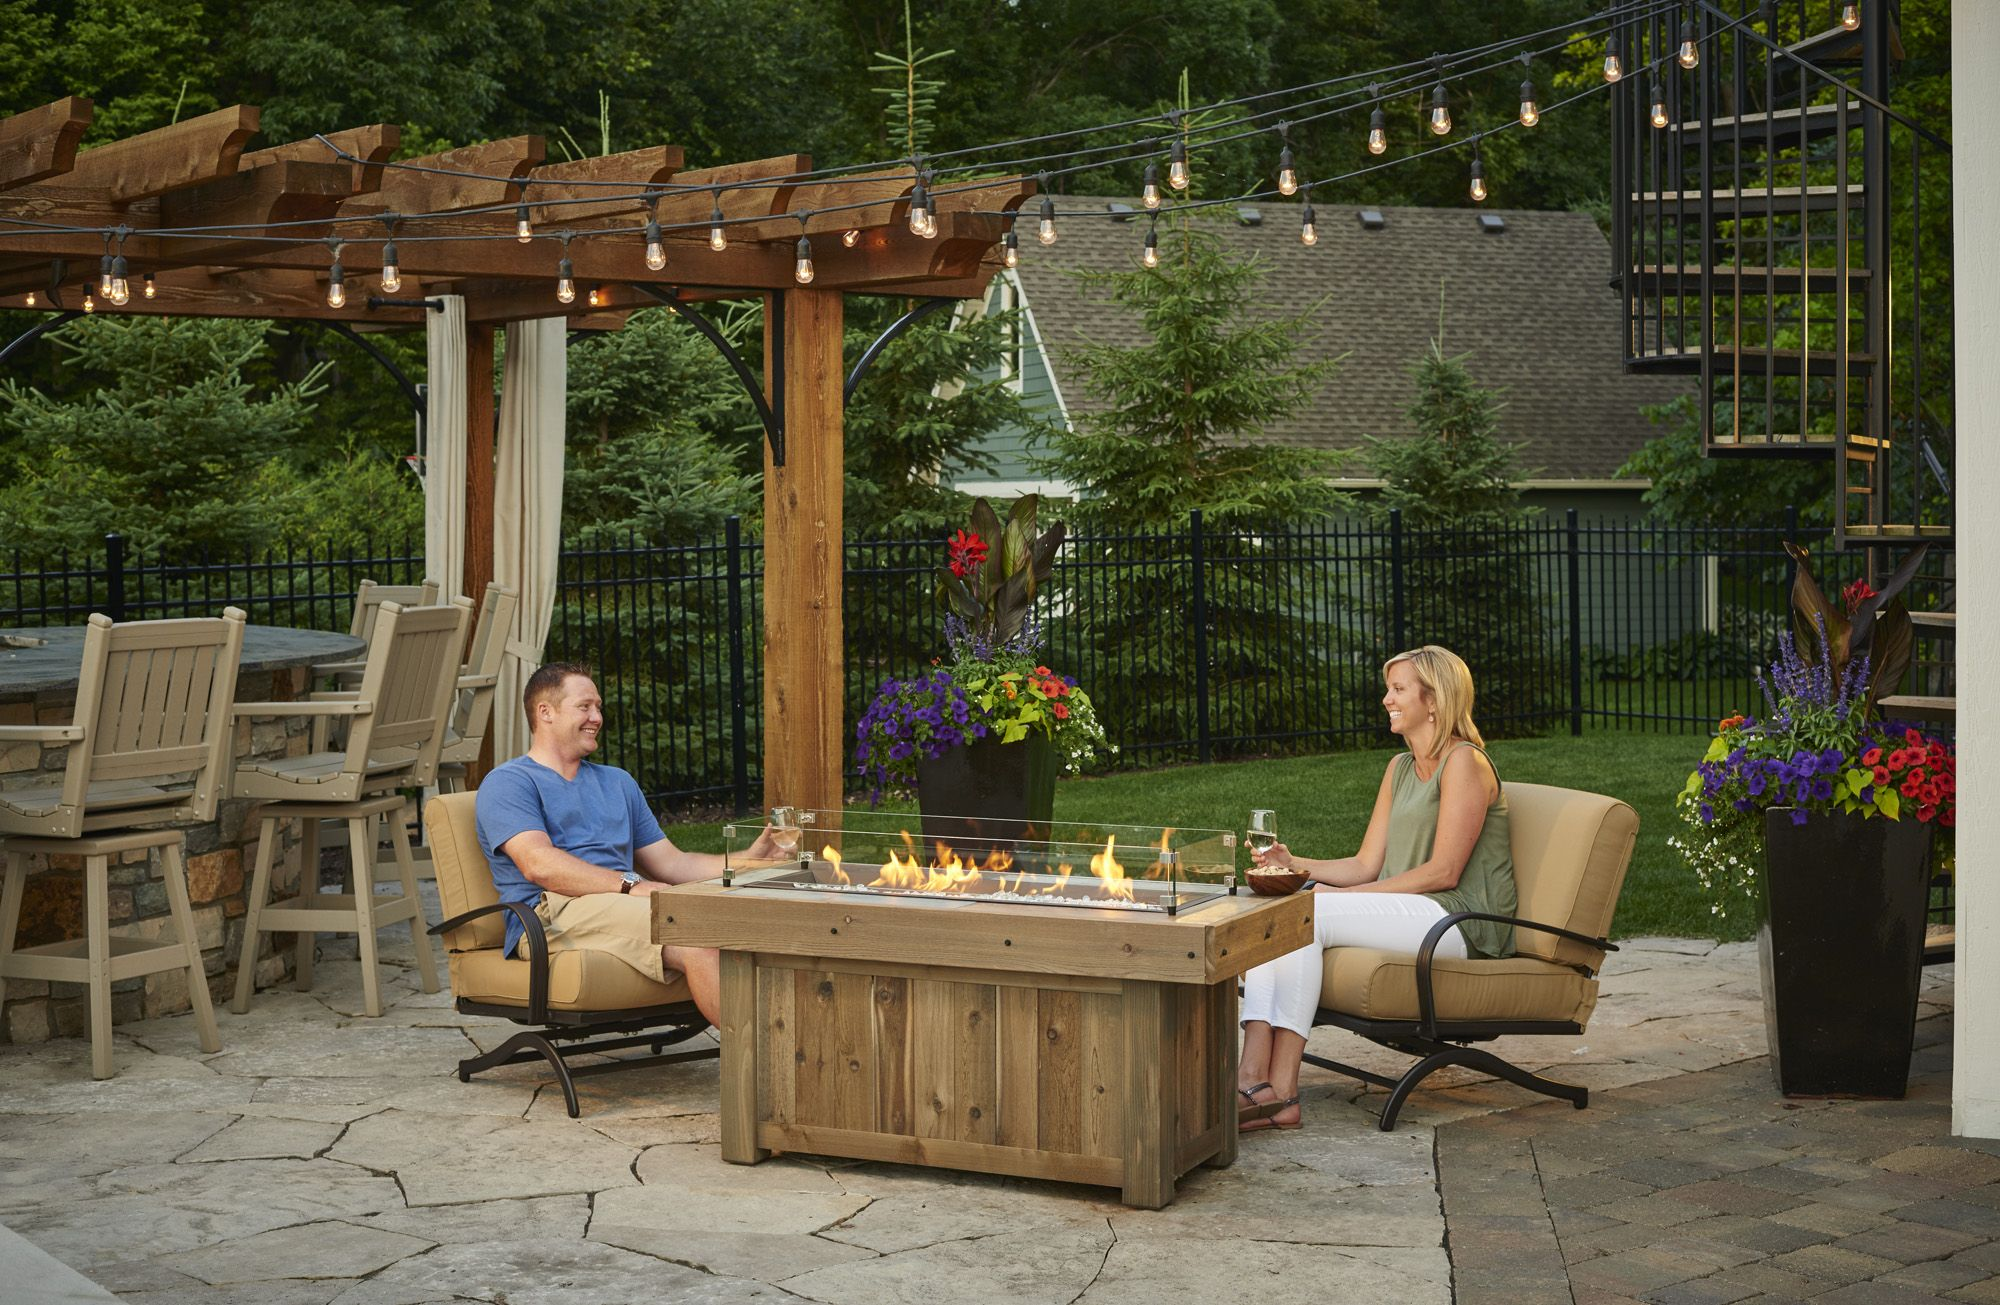 pin by rettinger fireplace systems on fire pits pinterest cozy